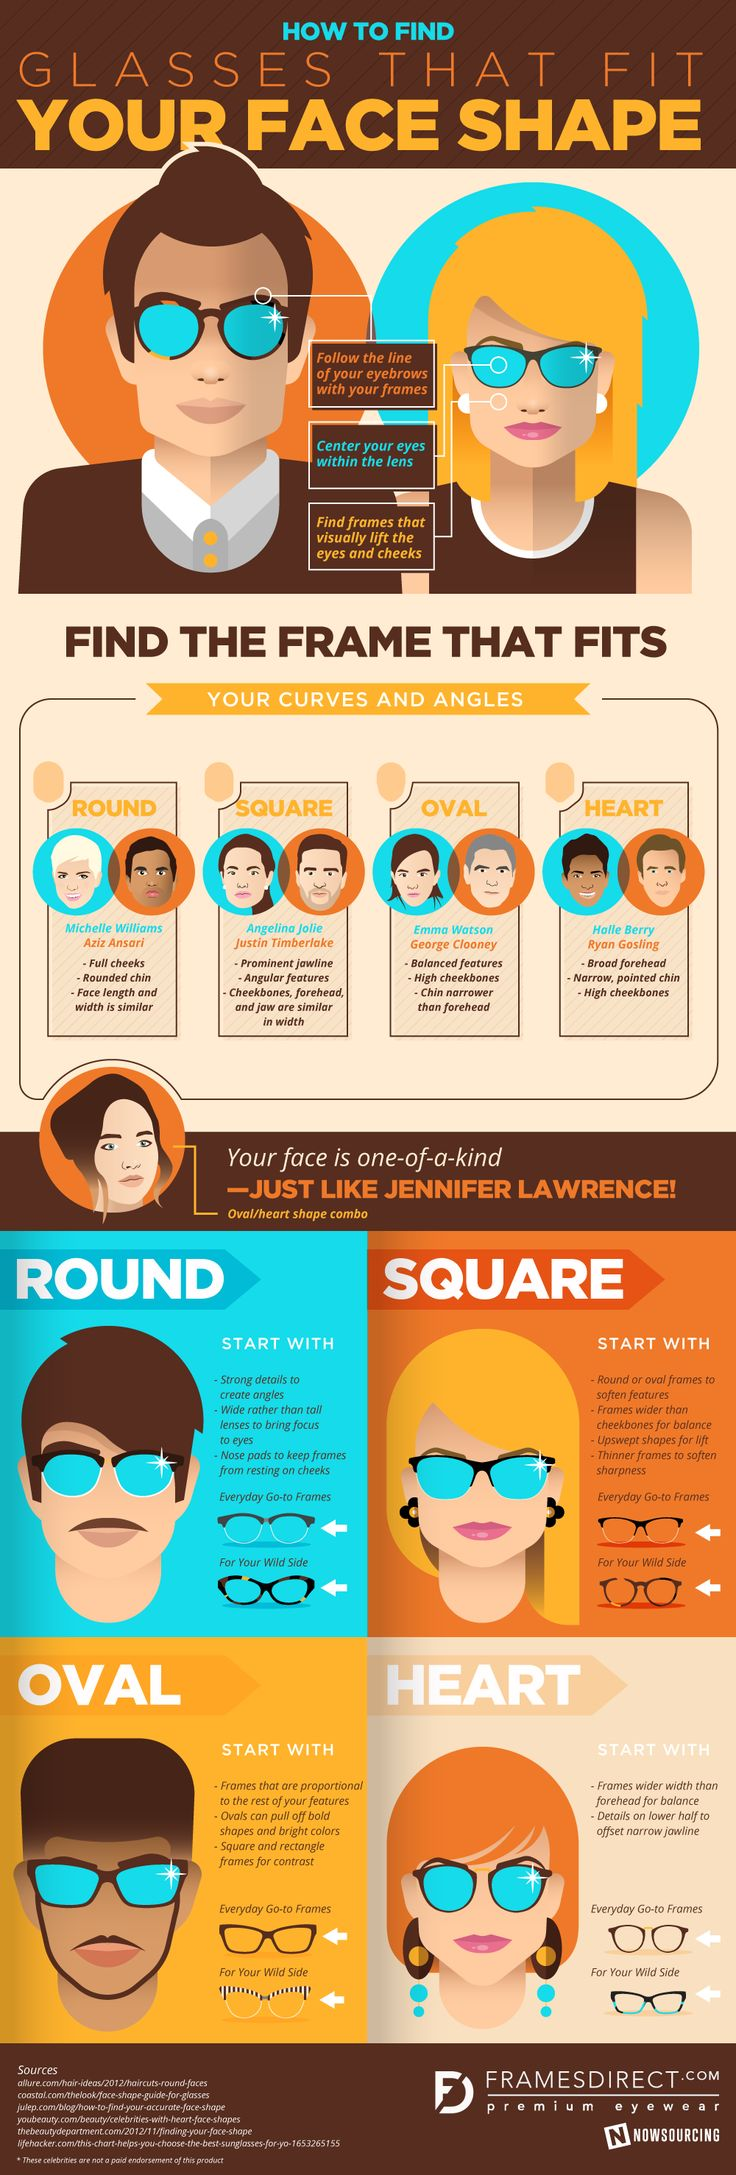 How to Find Glasses to Fit Your Face Shape #infographic #HowTo #Lifestyle #Fashion